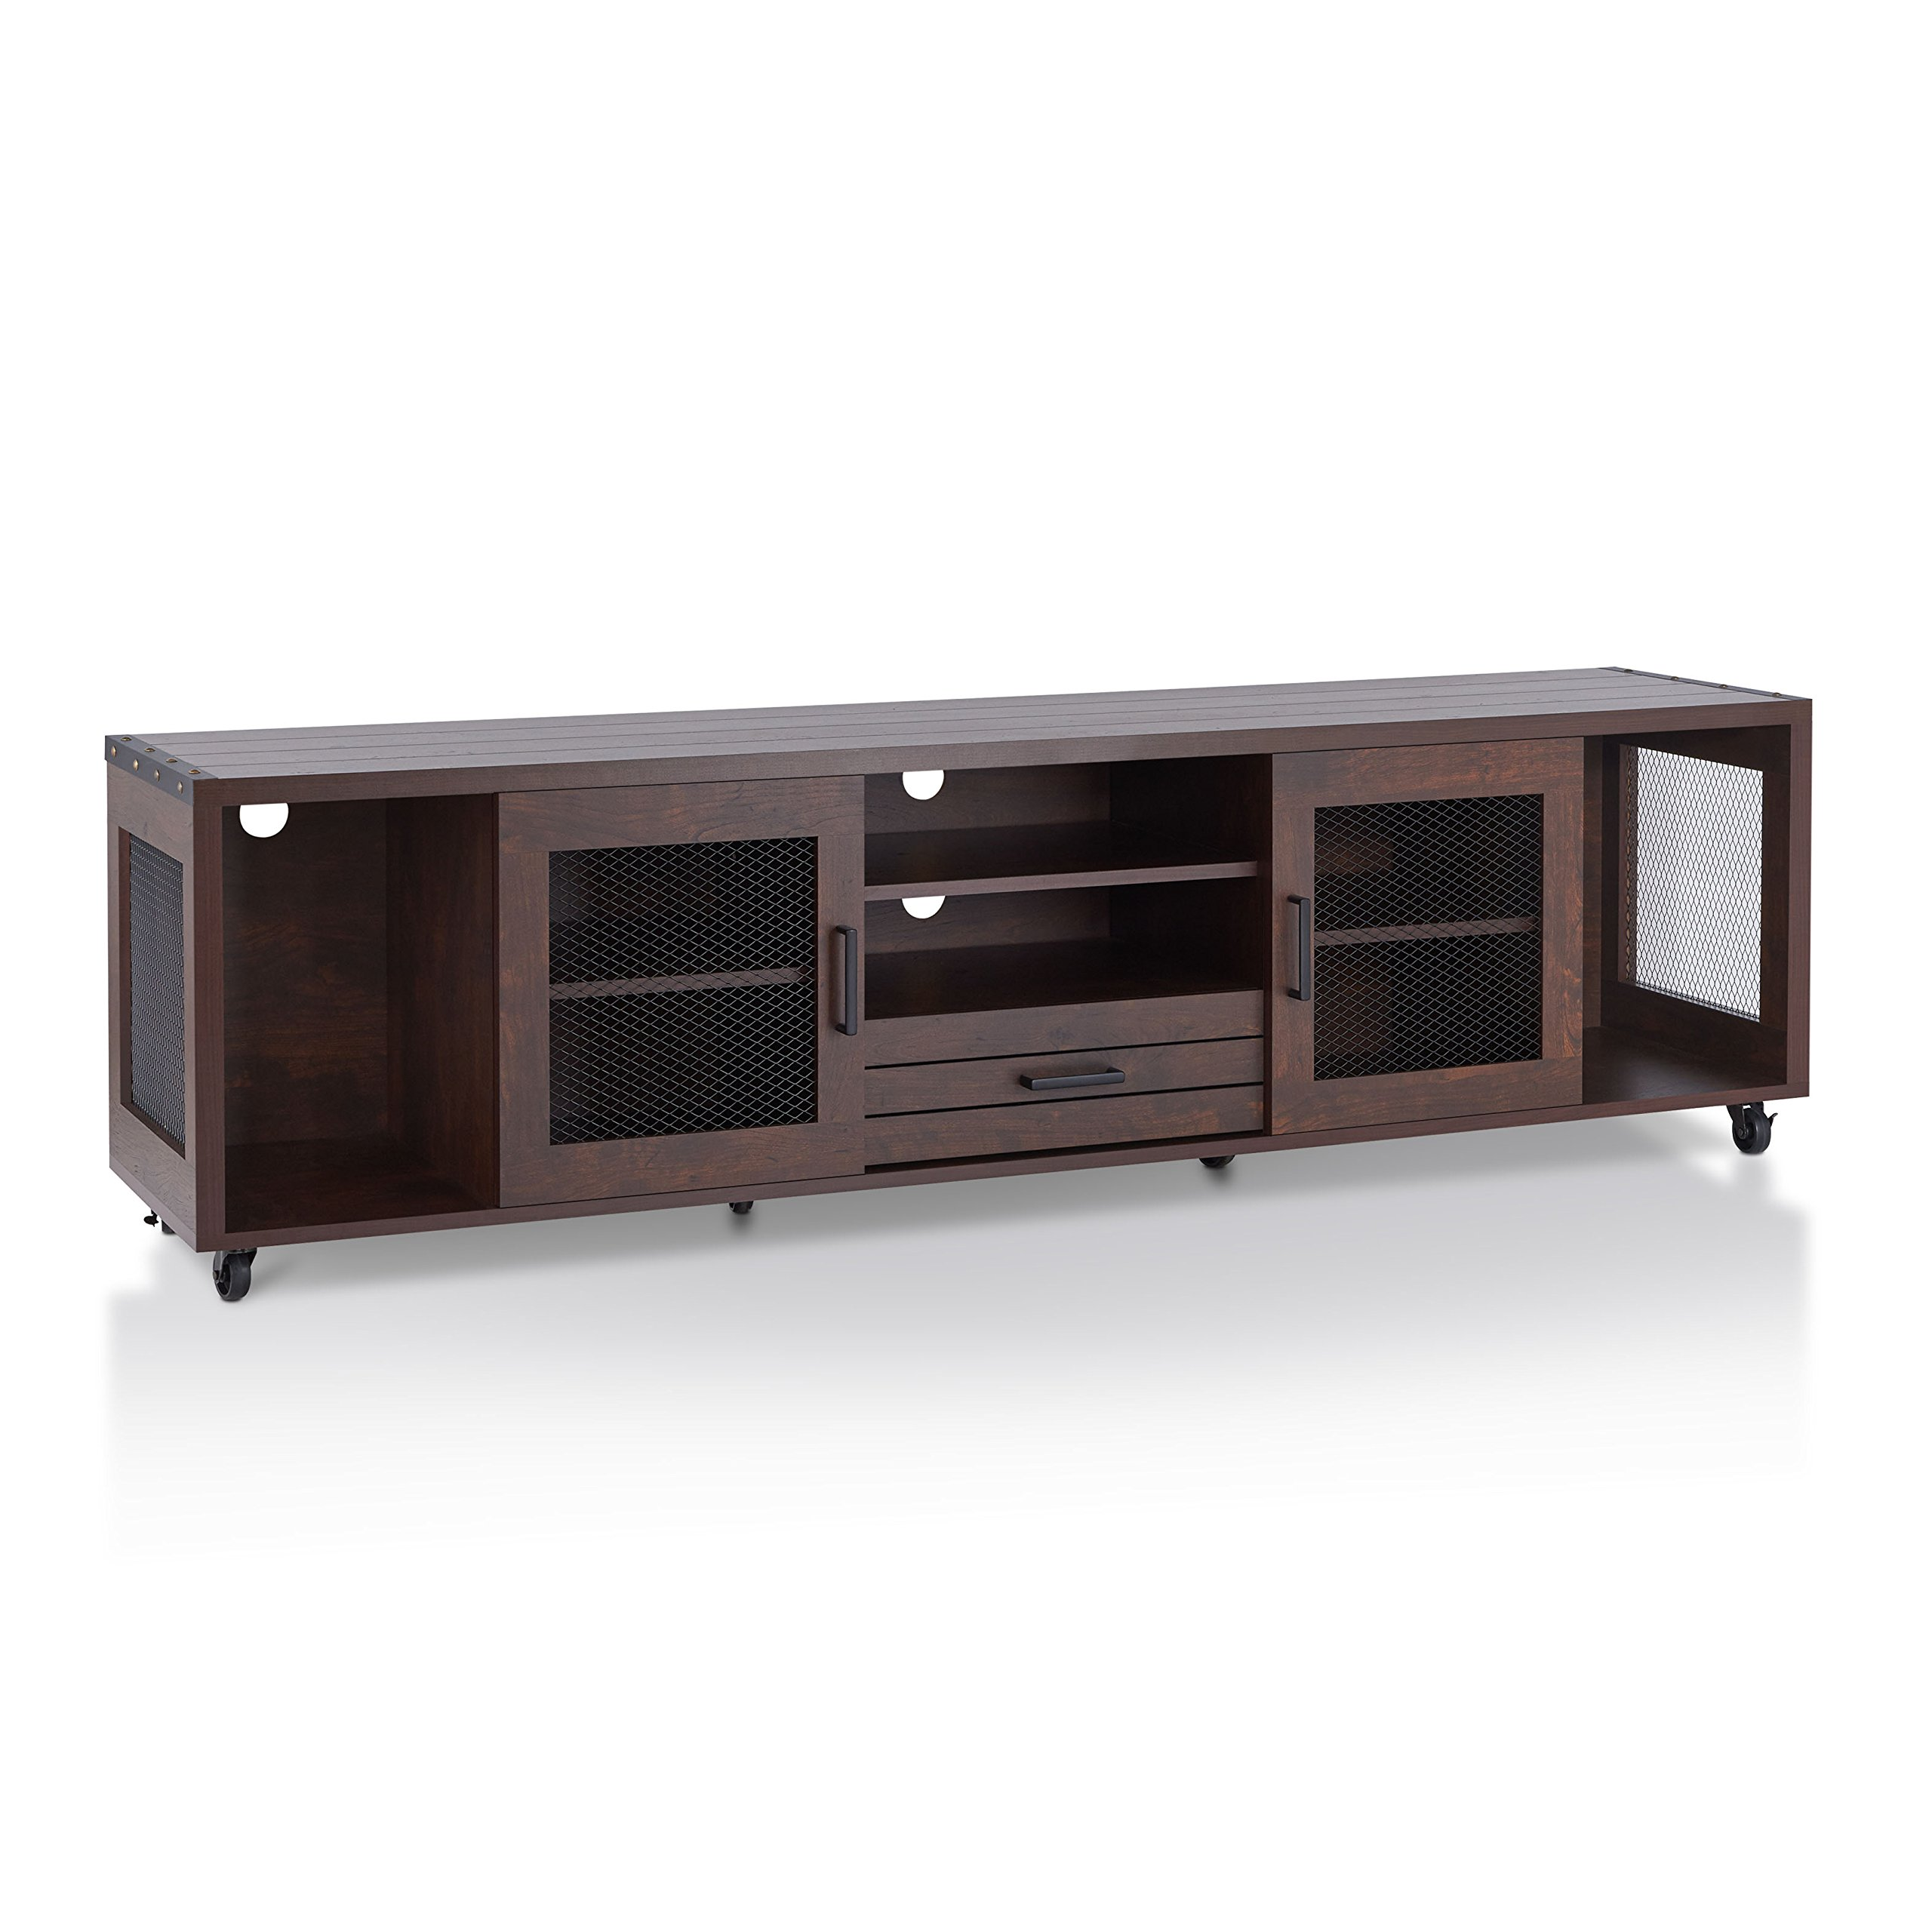 HOMES: Inside + Out Penderton Transitional Style 70'' Media Stand, Vintage Walnut by HOMES: Inside + Out